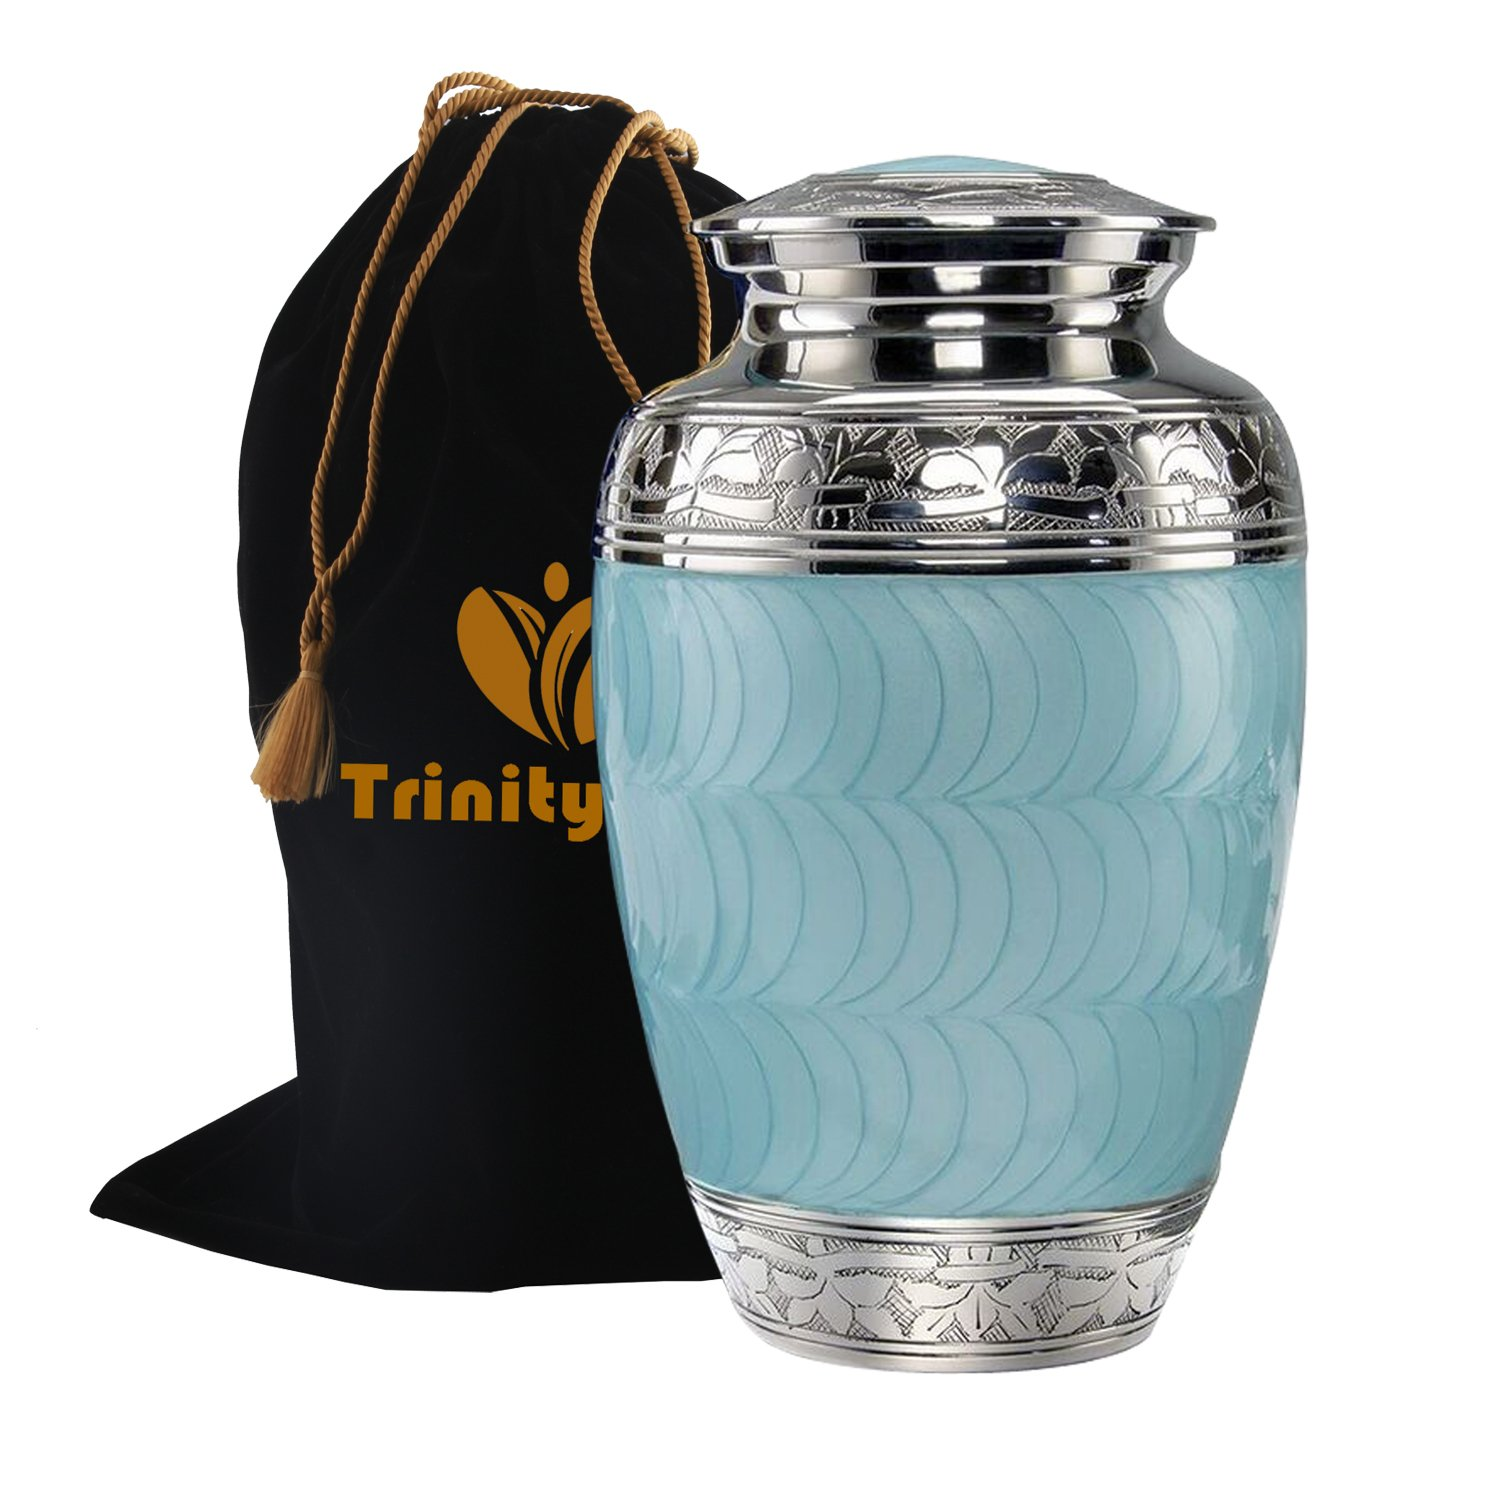 Classic Baby Blue Brass Cremation Urn - Beautifully Handcrafted Adult Funeral Urn - Solid Brass Funeral Urn - Affordable Urn for Human Ashes with Free Velvet Bag